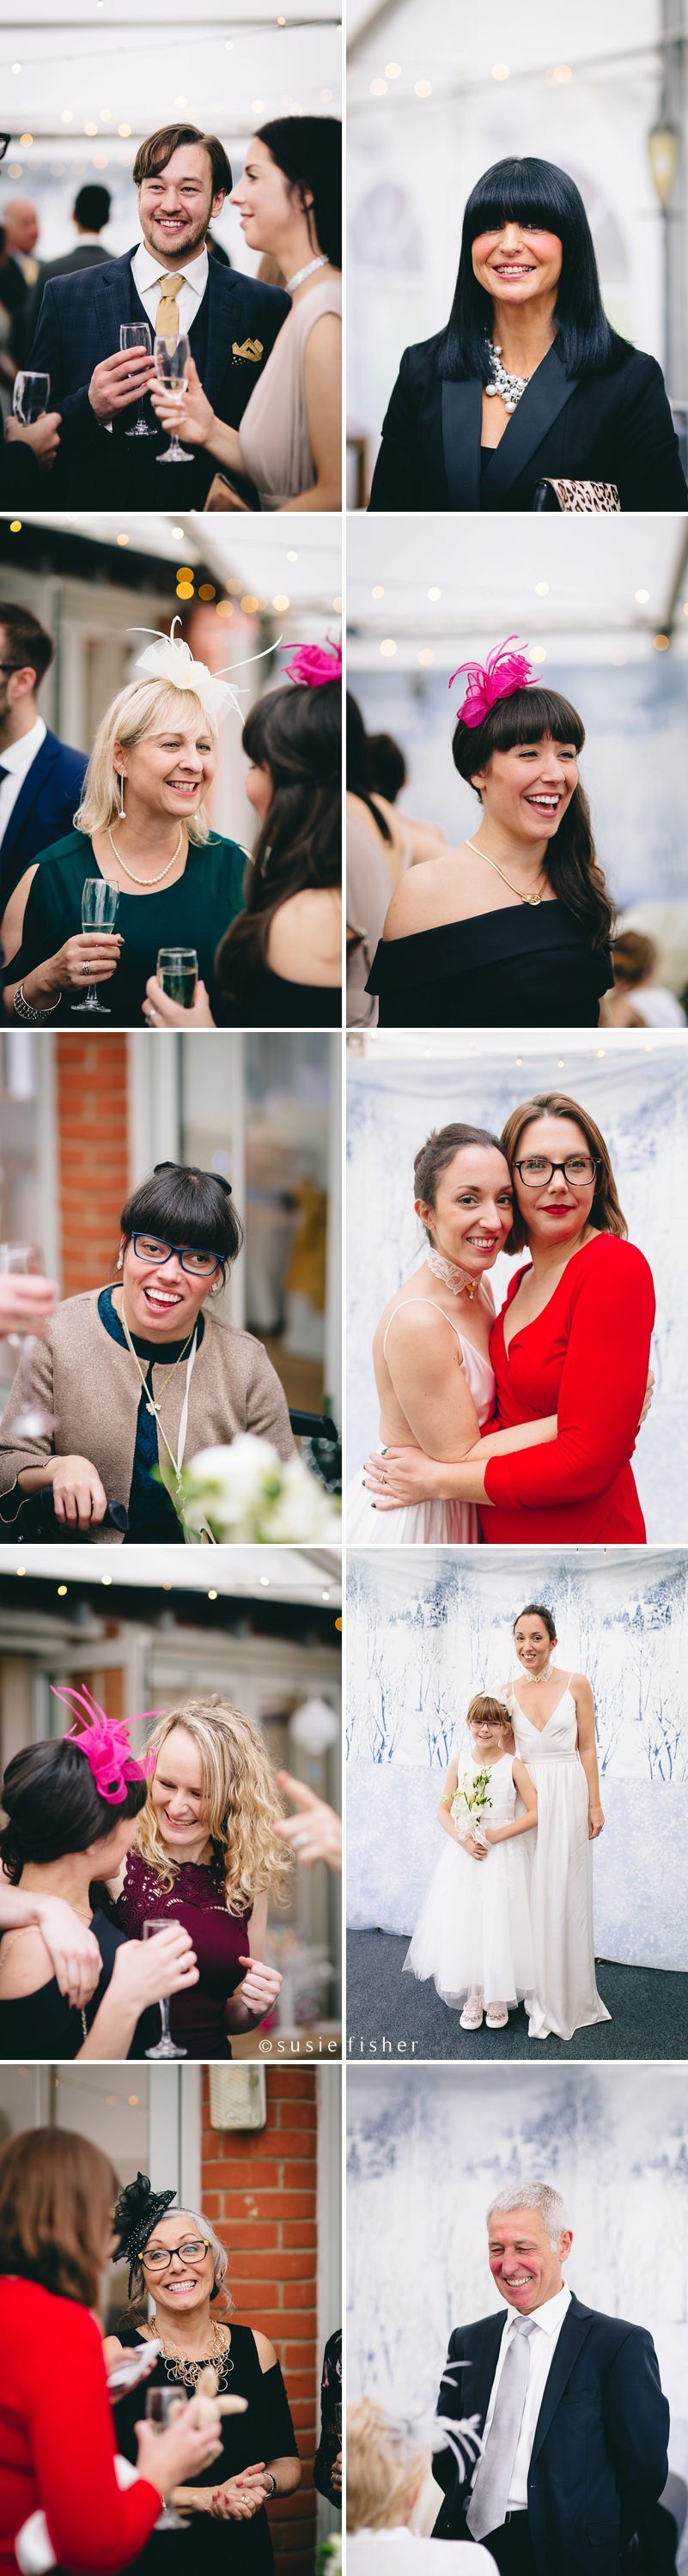 Wedding Photographer Guildford_Susie Fisher Photography